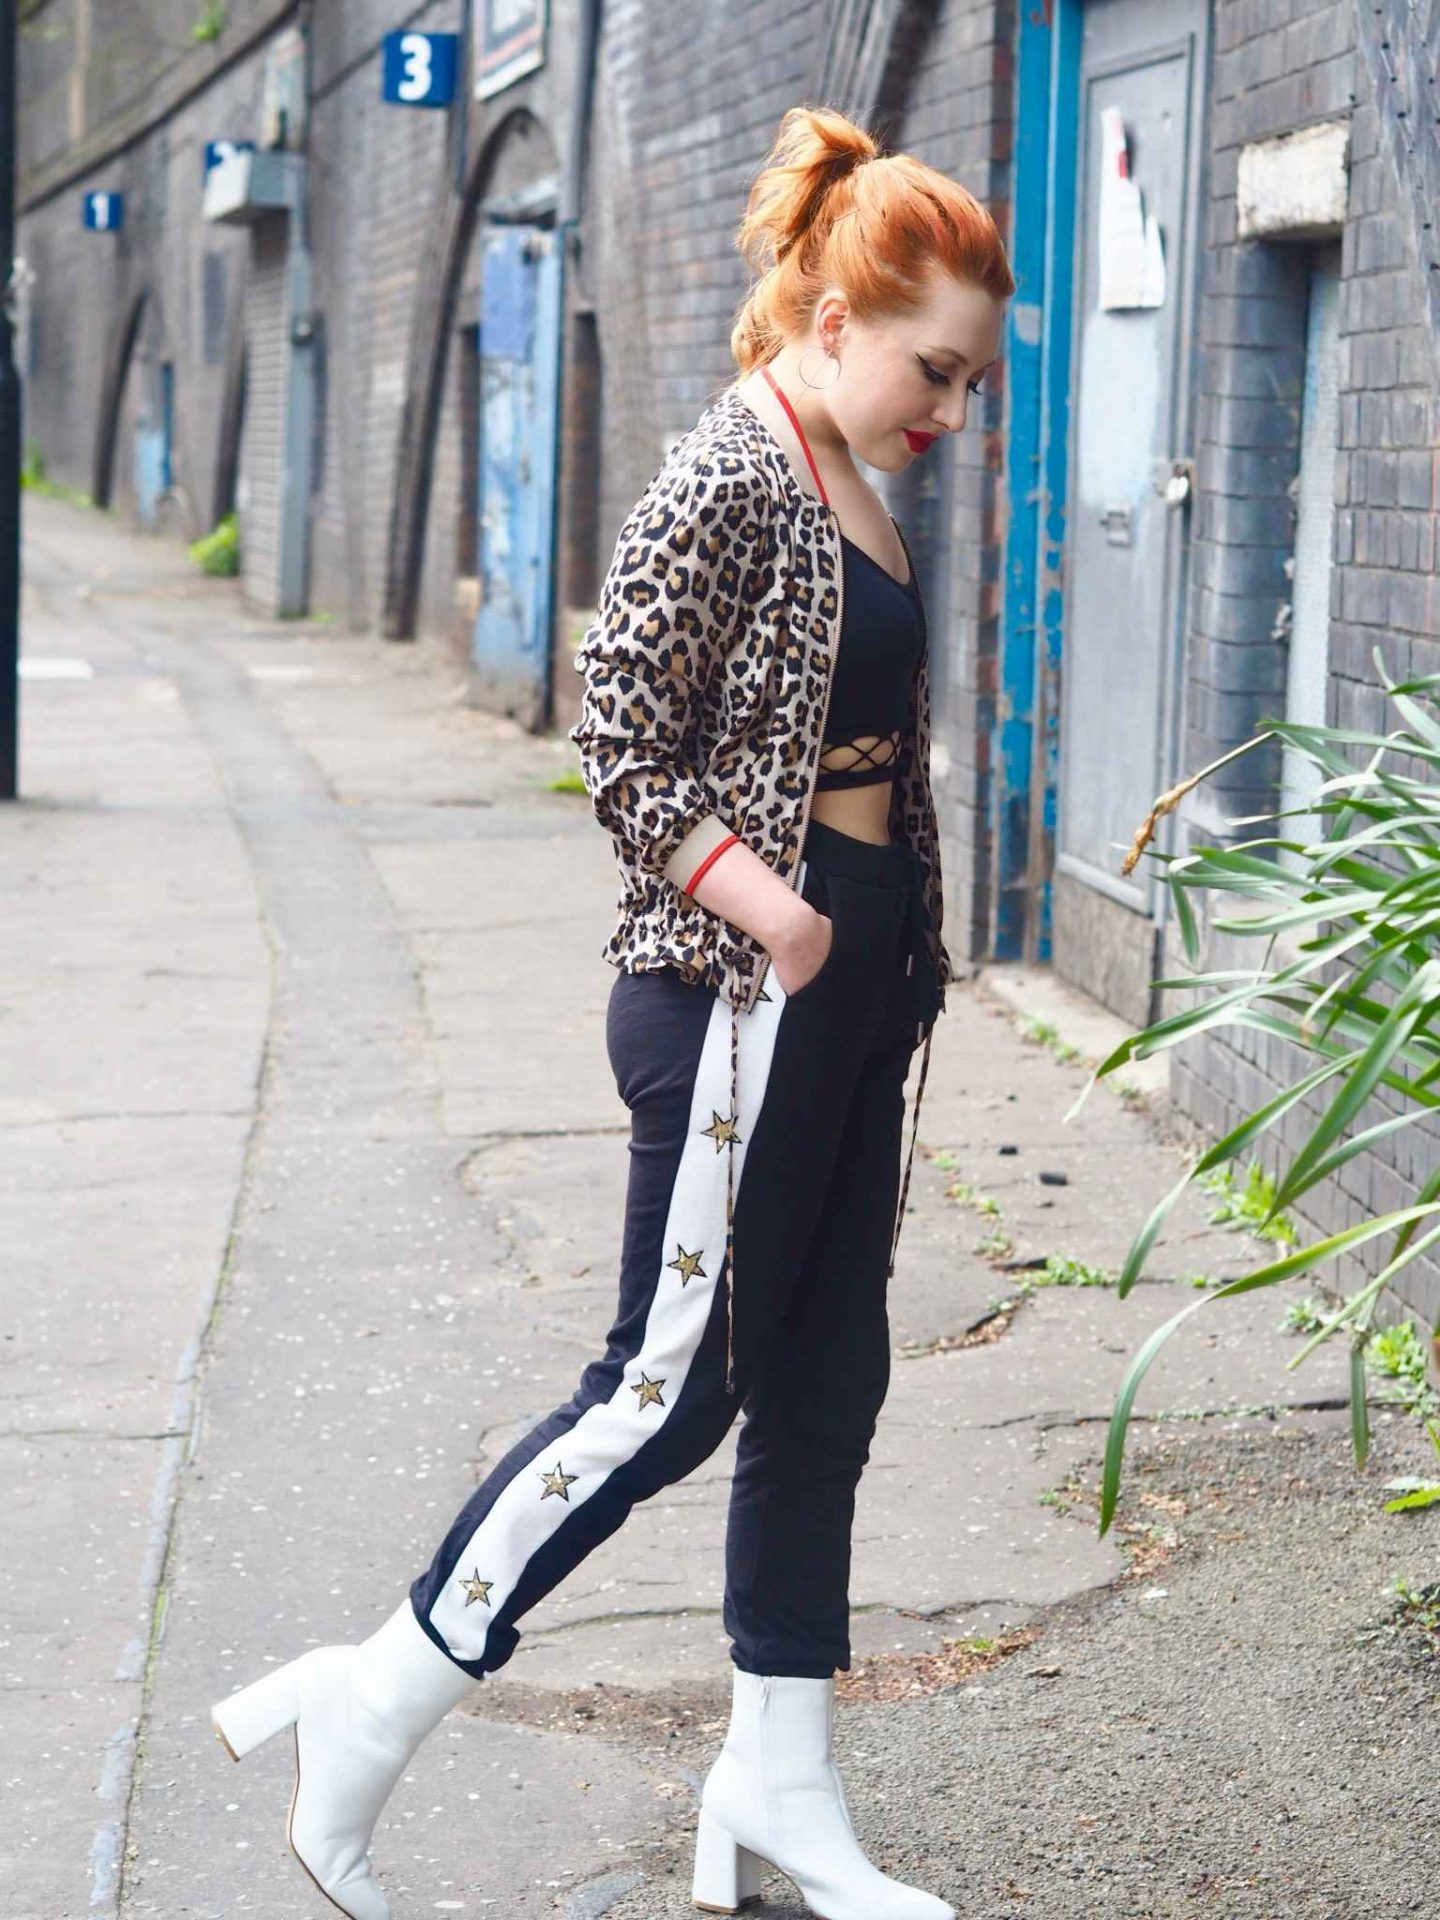 Blogger Styled by Alice wears the athleisure sports luxe trend by pairing a leopard print bomber with embellished black and white sweatpants and white heeled ankle boots